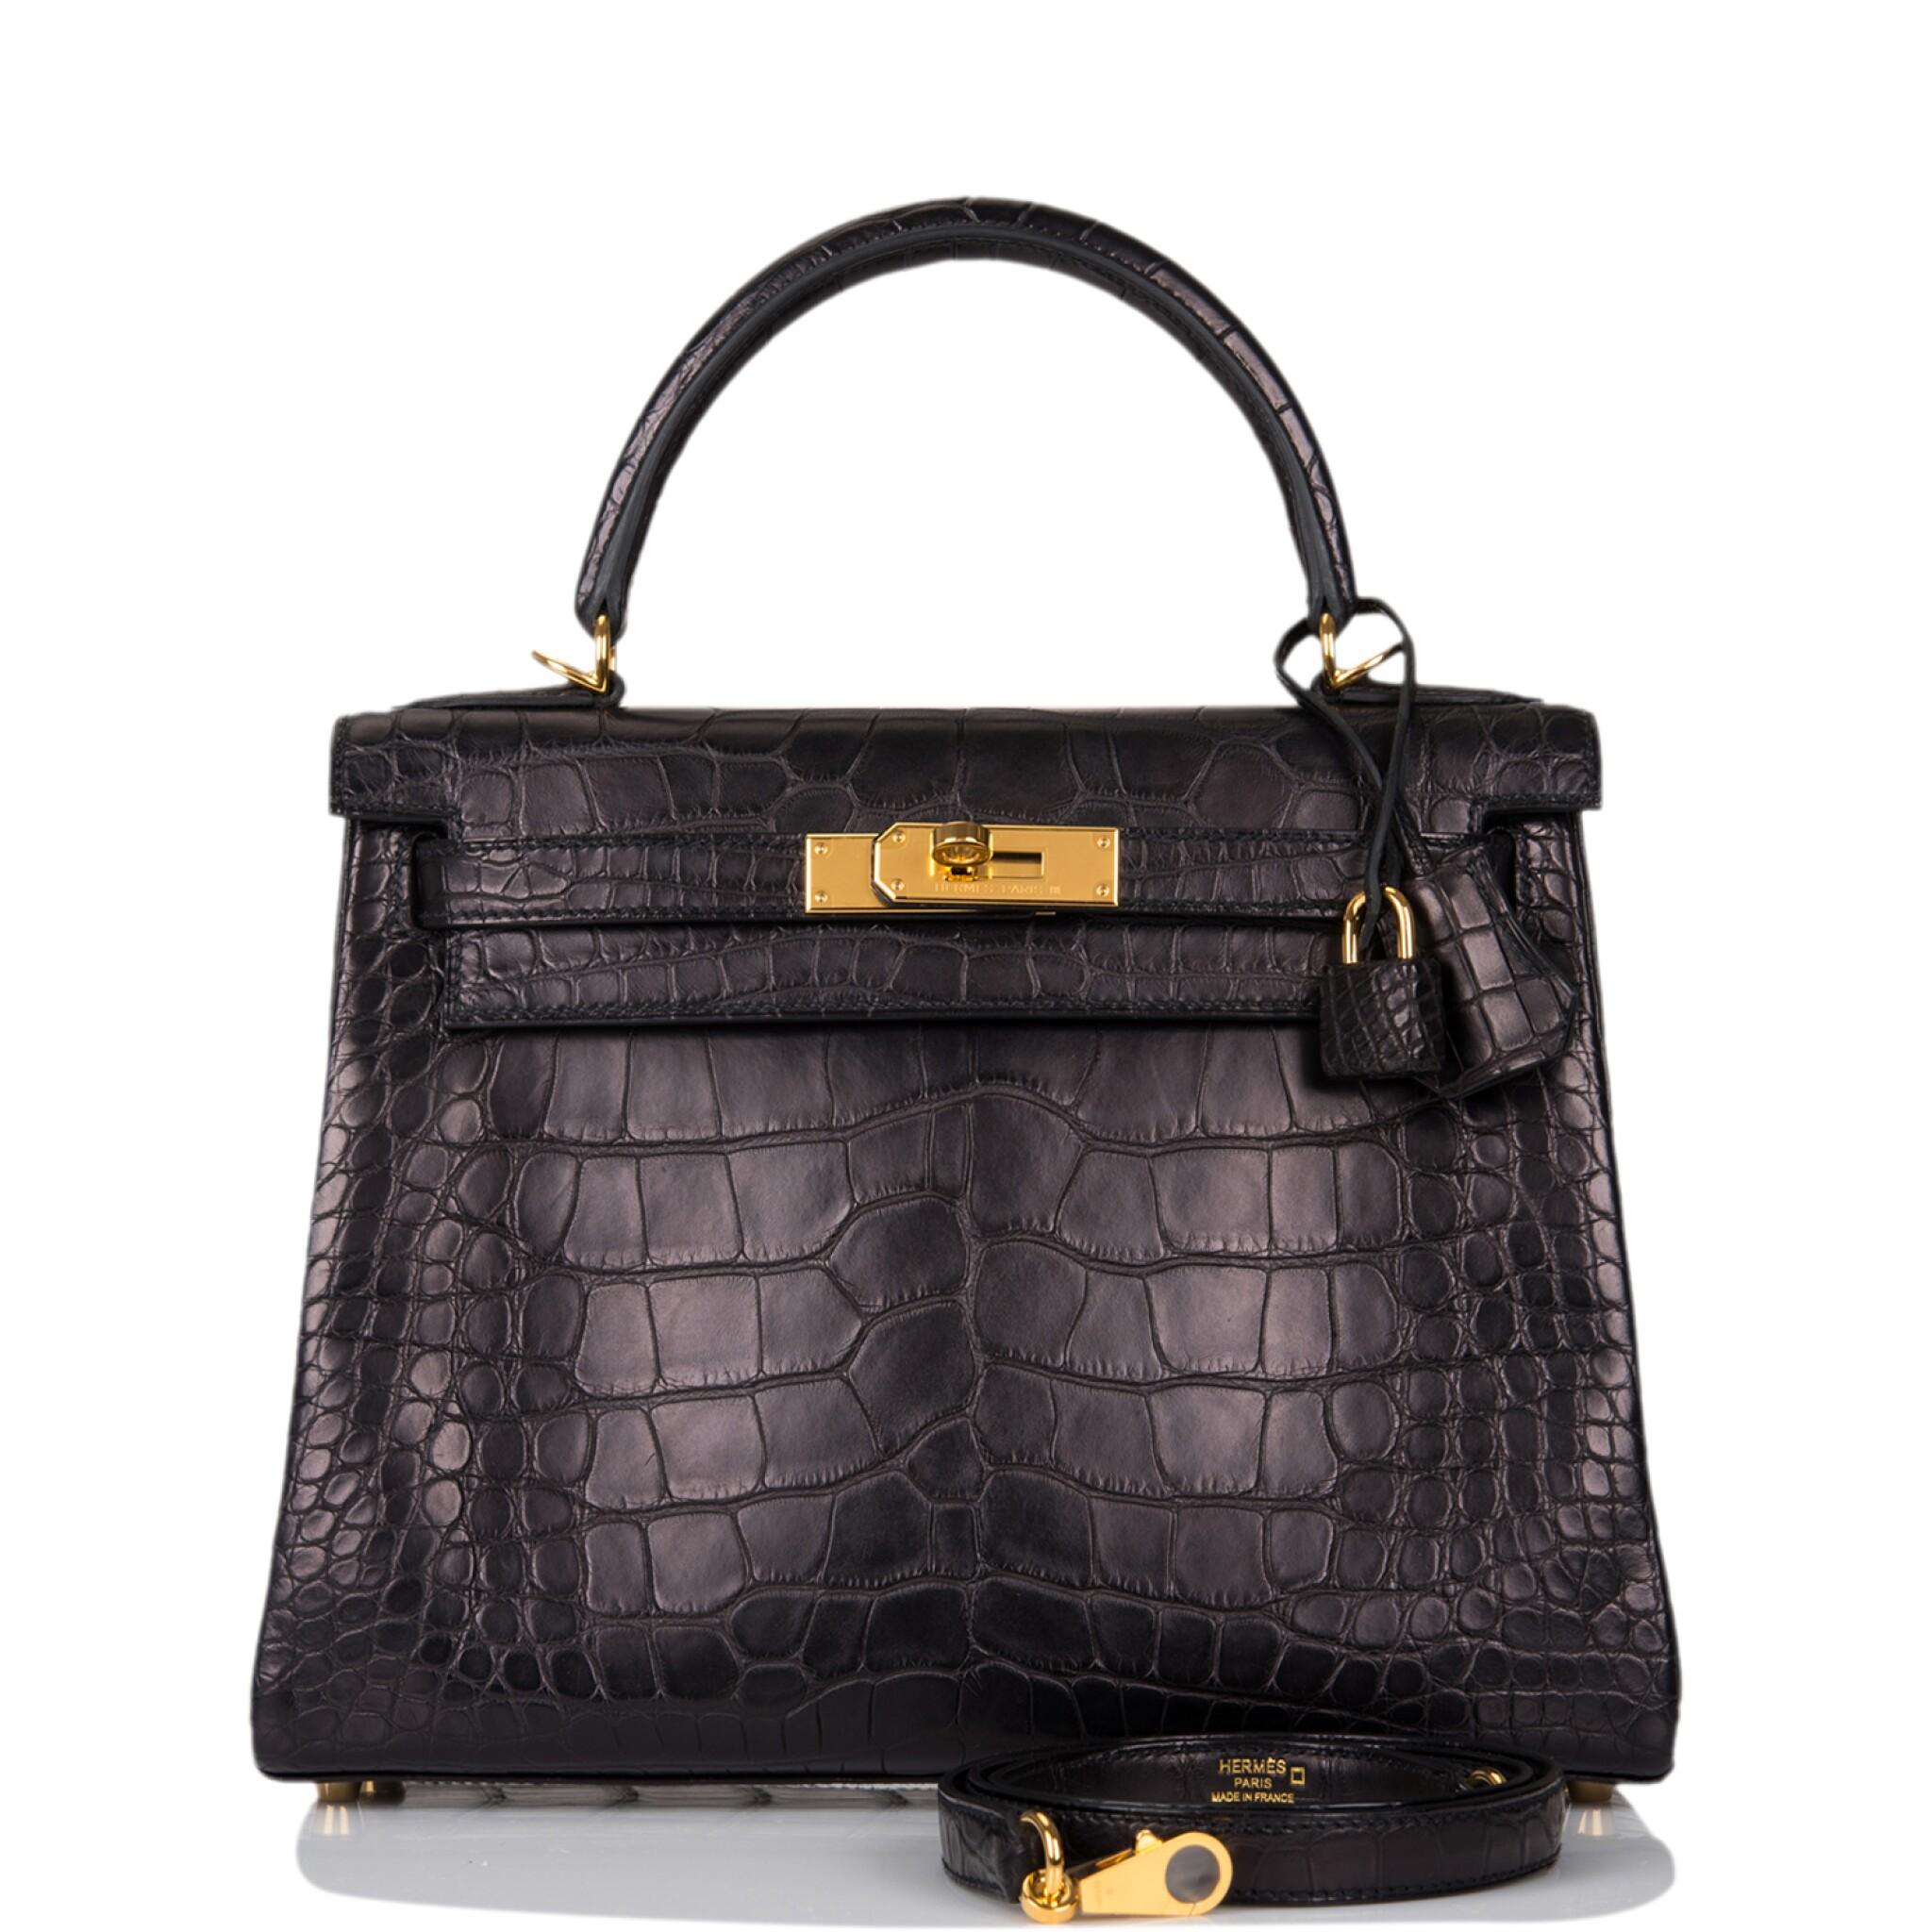 View full screen - View 1 of Lot 44. Hermès Black Retourne Kelly 28cm of Matte Alligator with Gold Hardware.